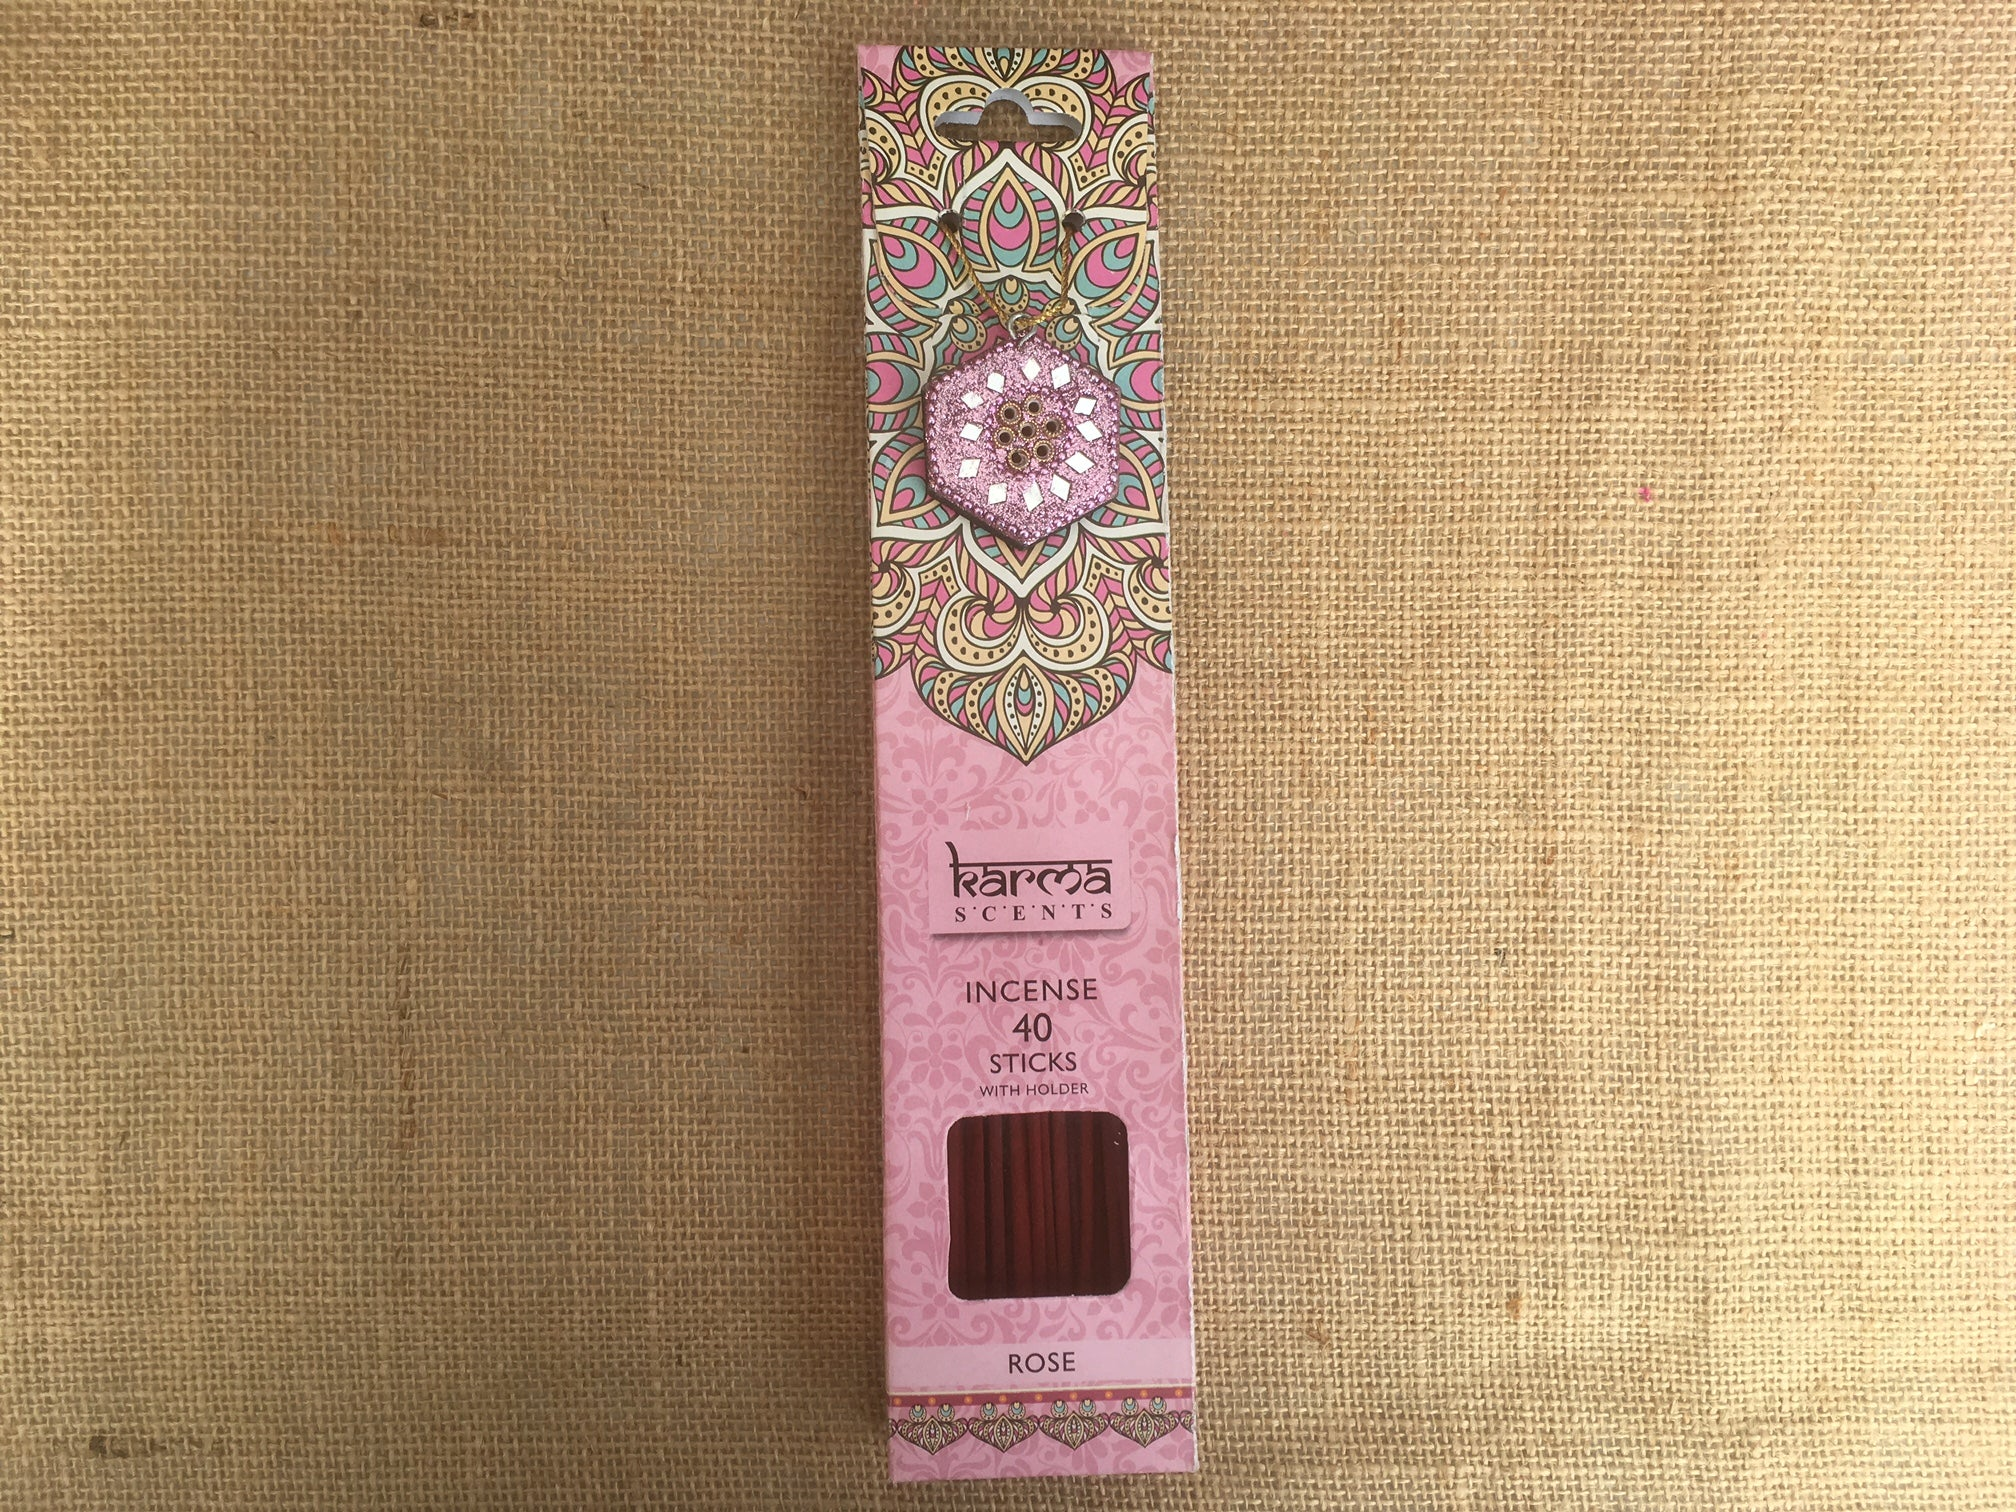 Karma Incense sticks - Rose fragrance